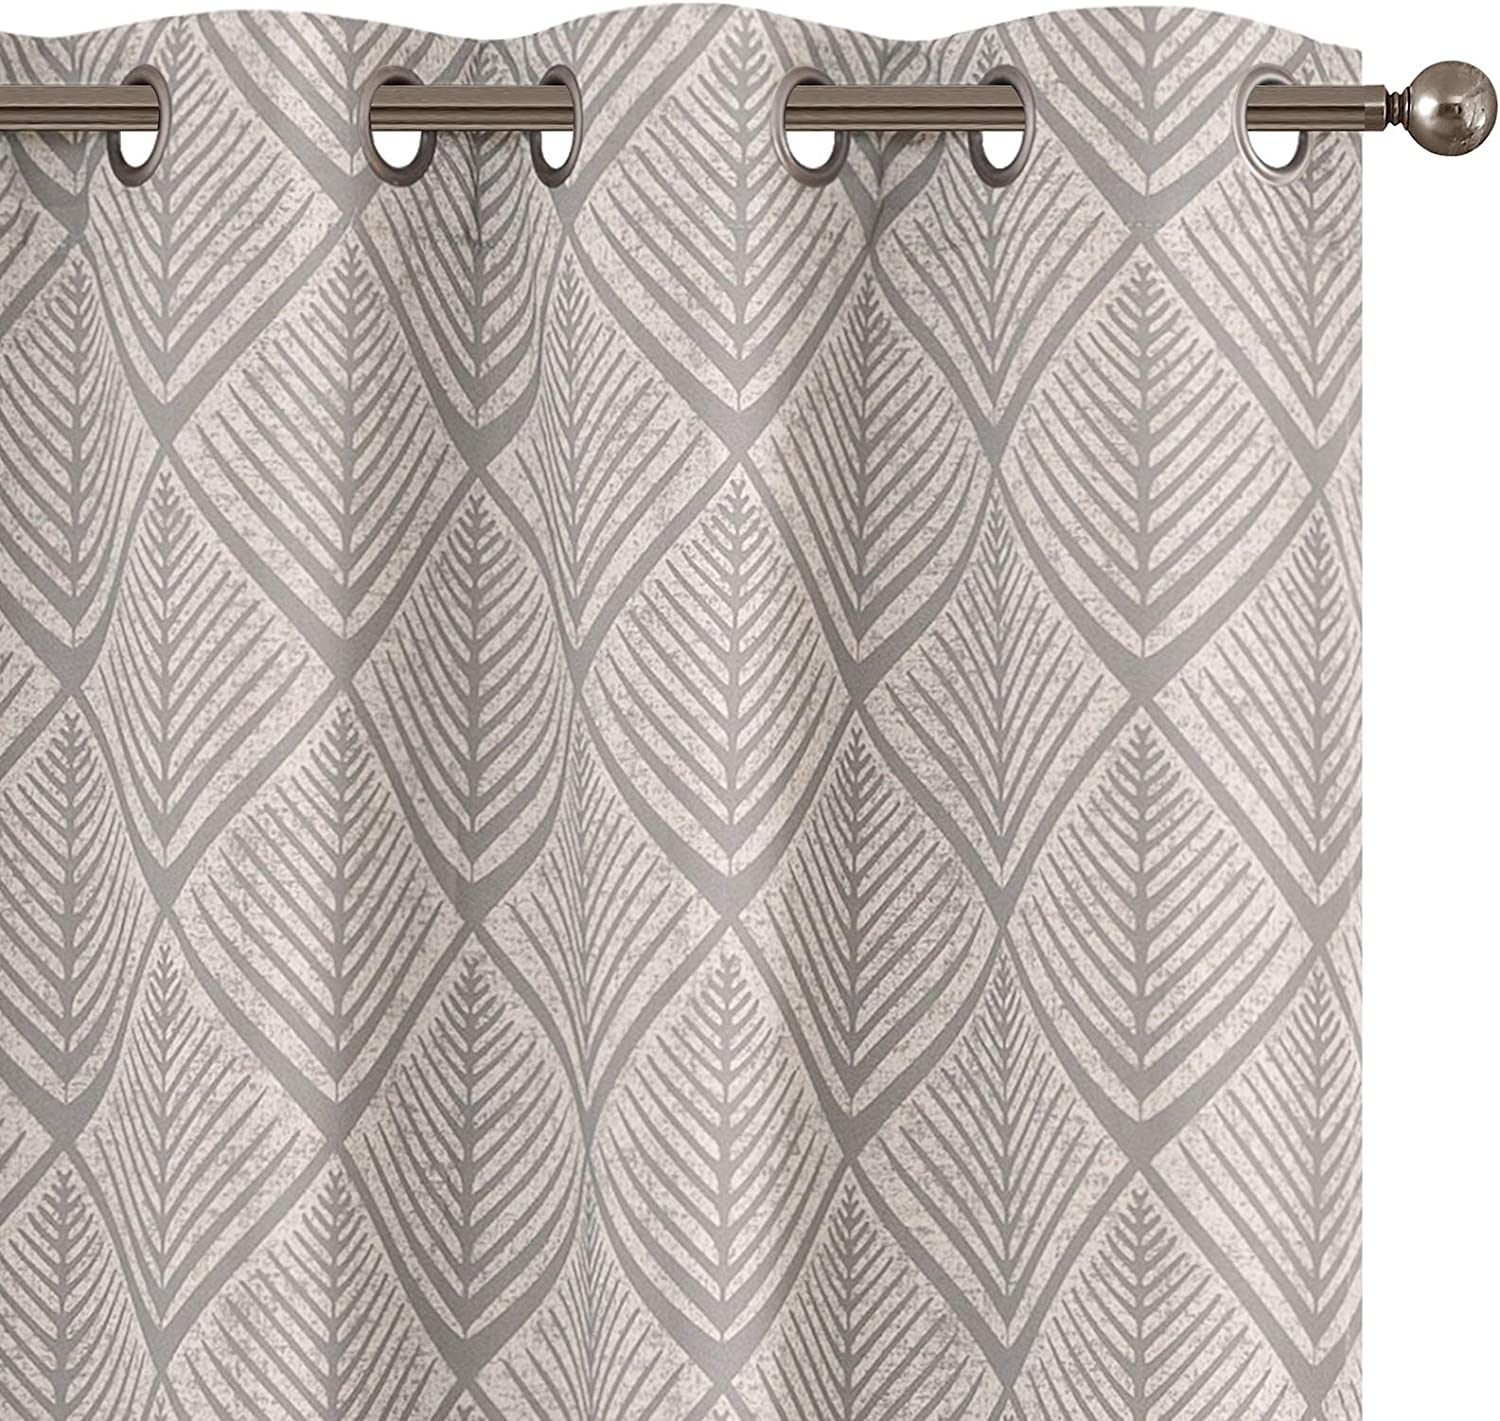 Mudcloth Geometric Black And White by red/_raspberry/_design Plus Custom Curtain Panel by Spoonflower Geometric Curtain Panel